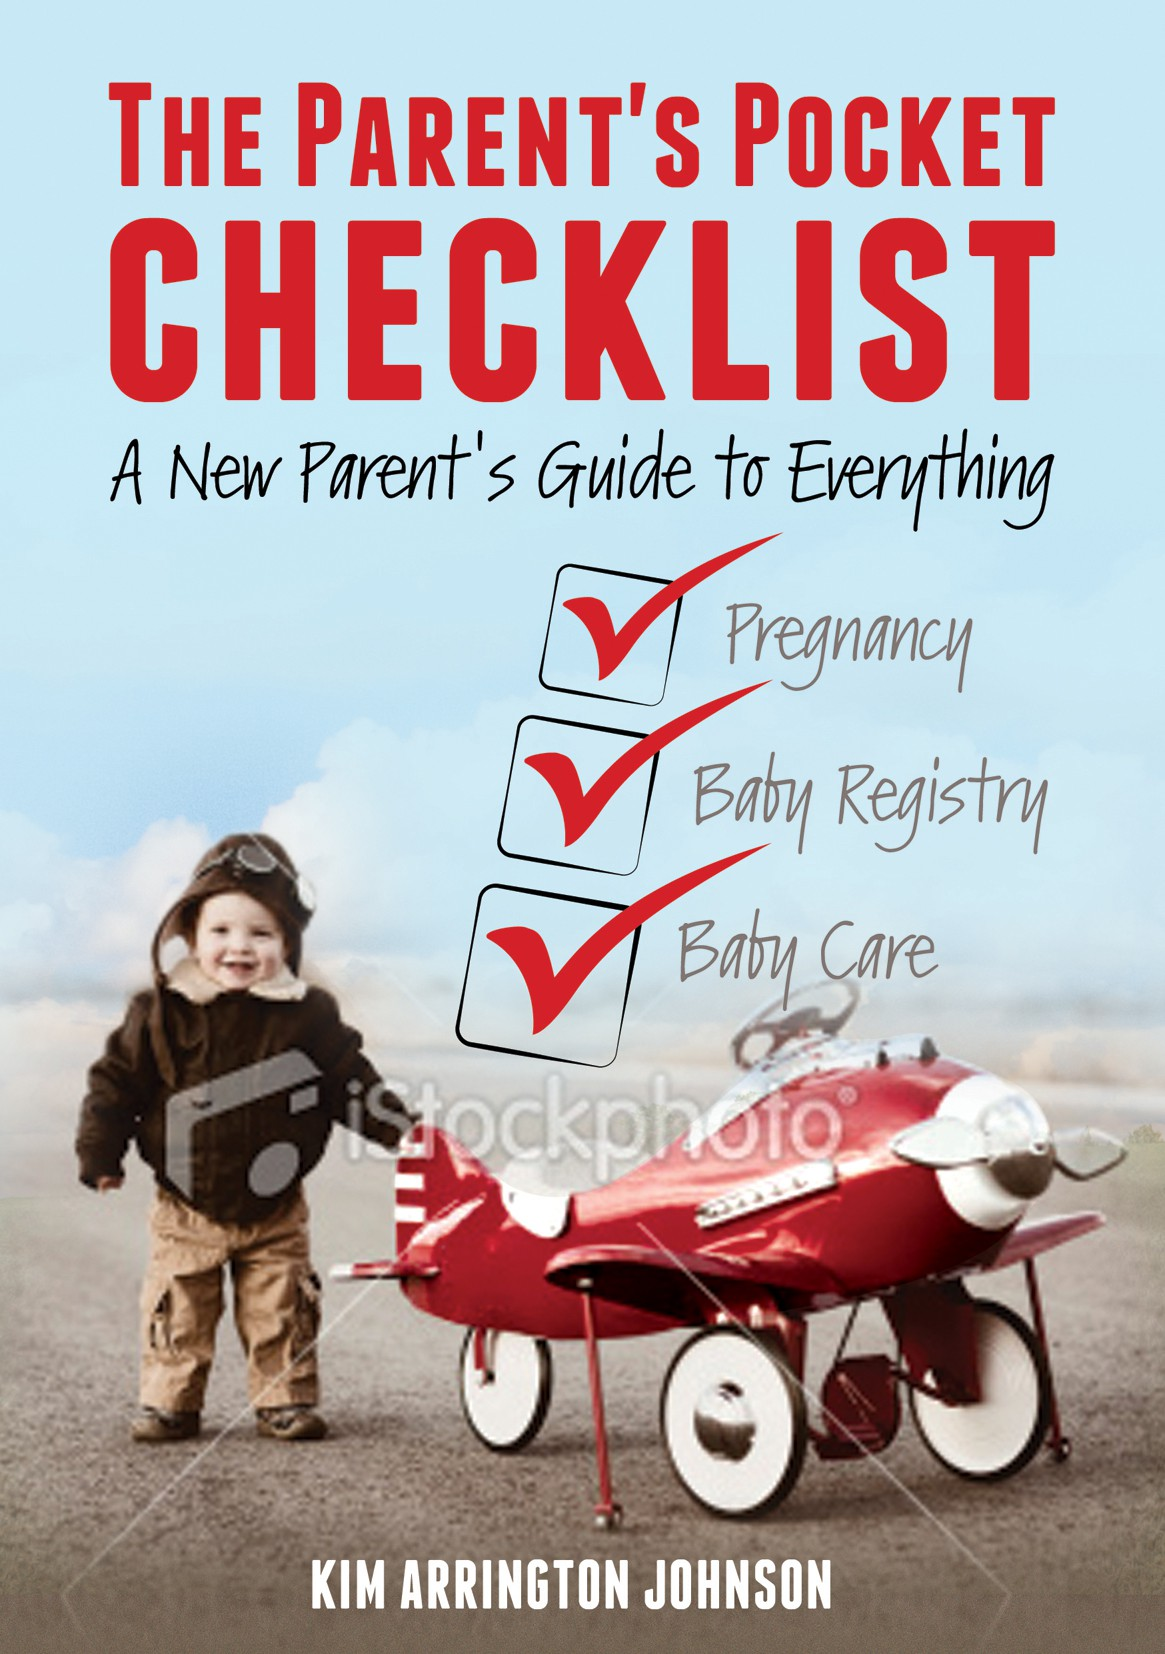 Create the next book or magazine cover for Parent's Pocket Checklist